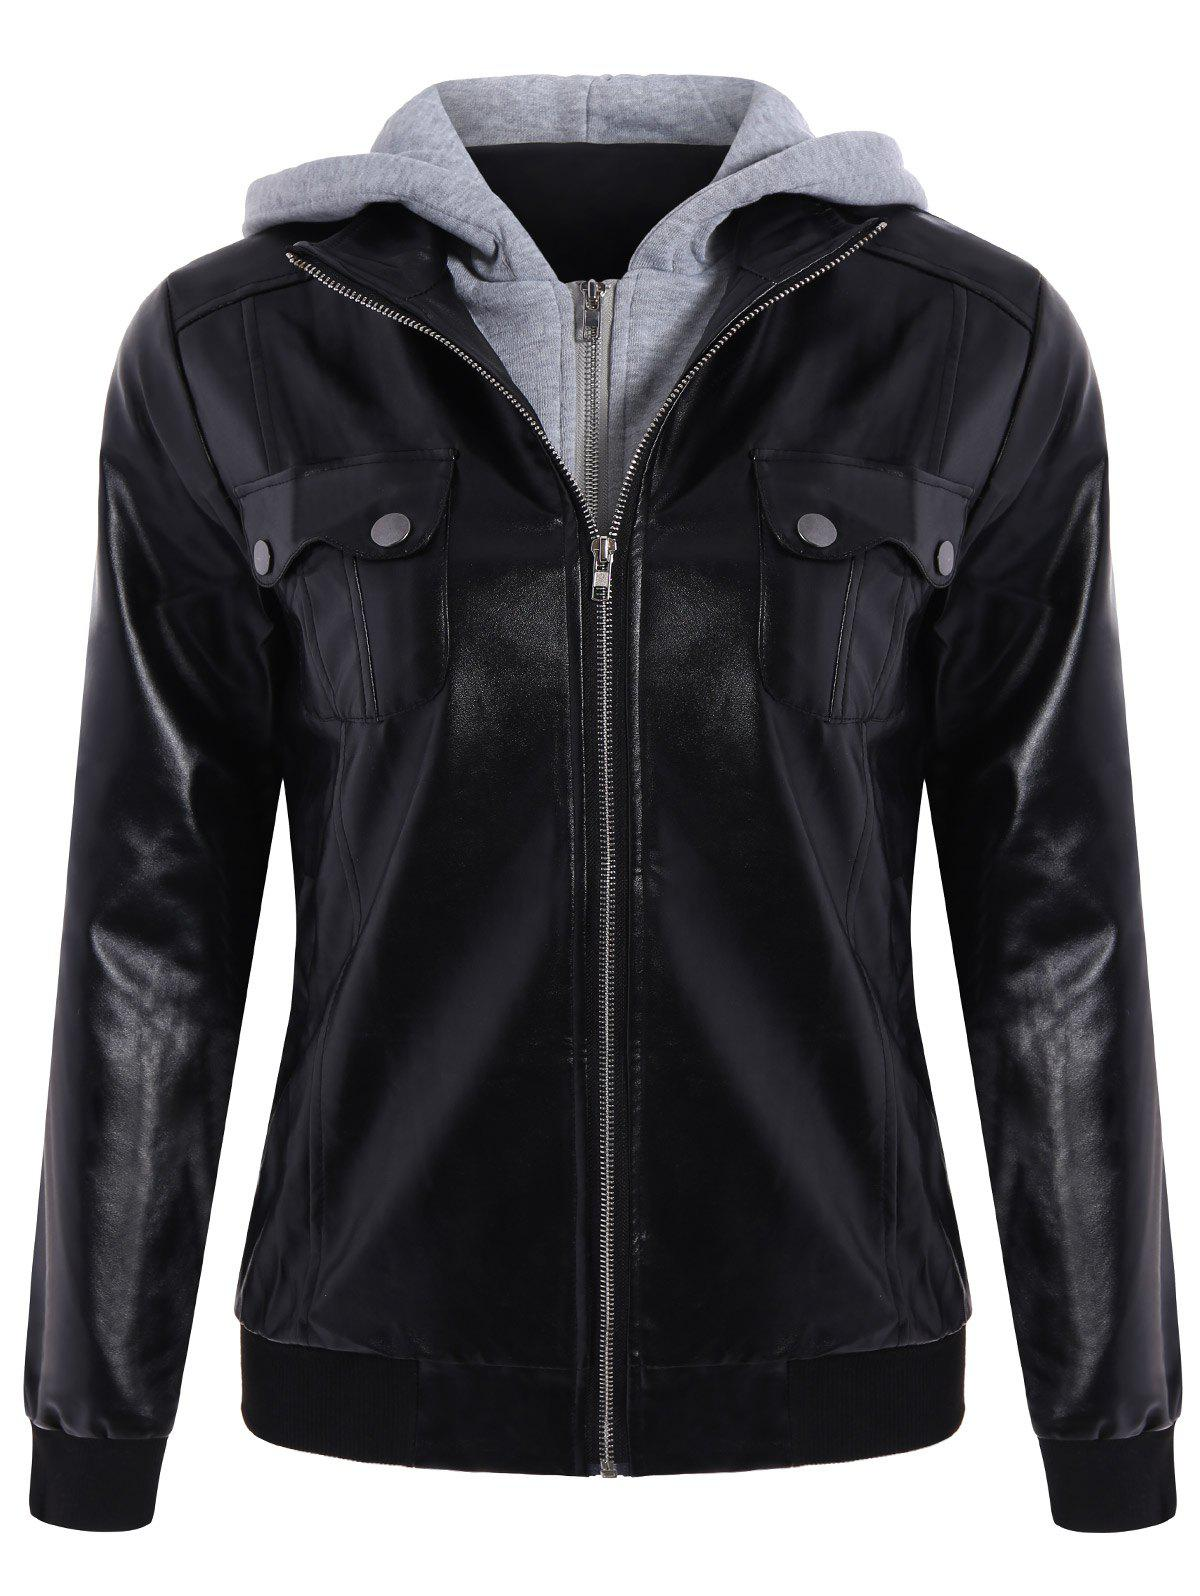 Attractive Hooded Pocket Design Black Faux Leather Jacket